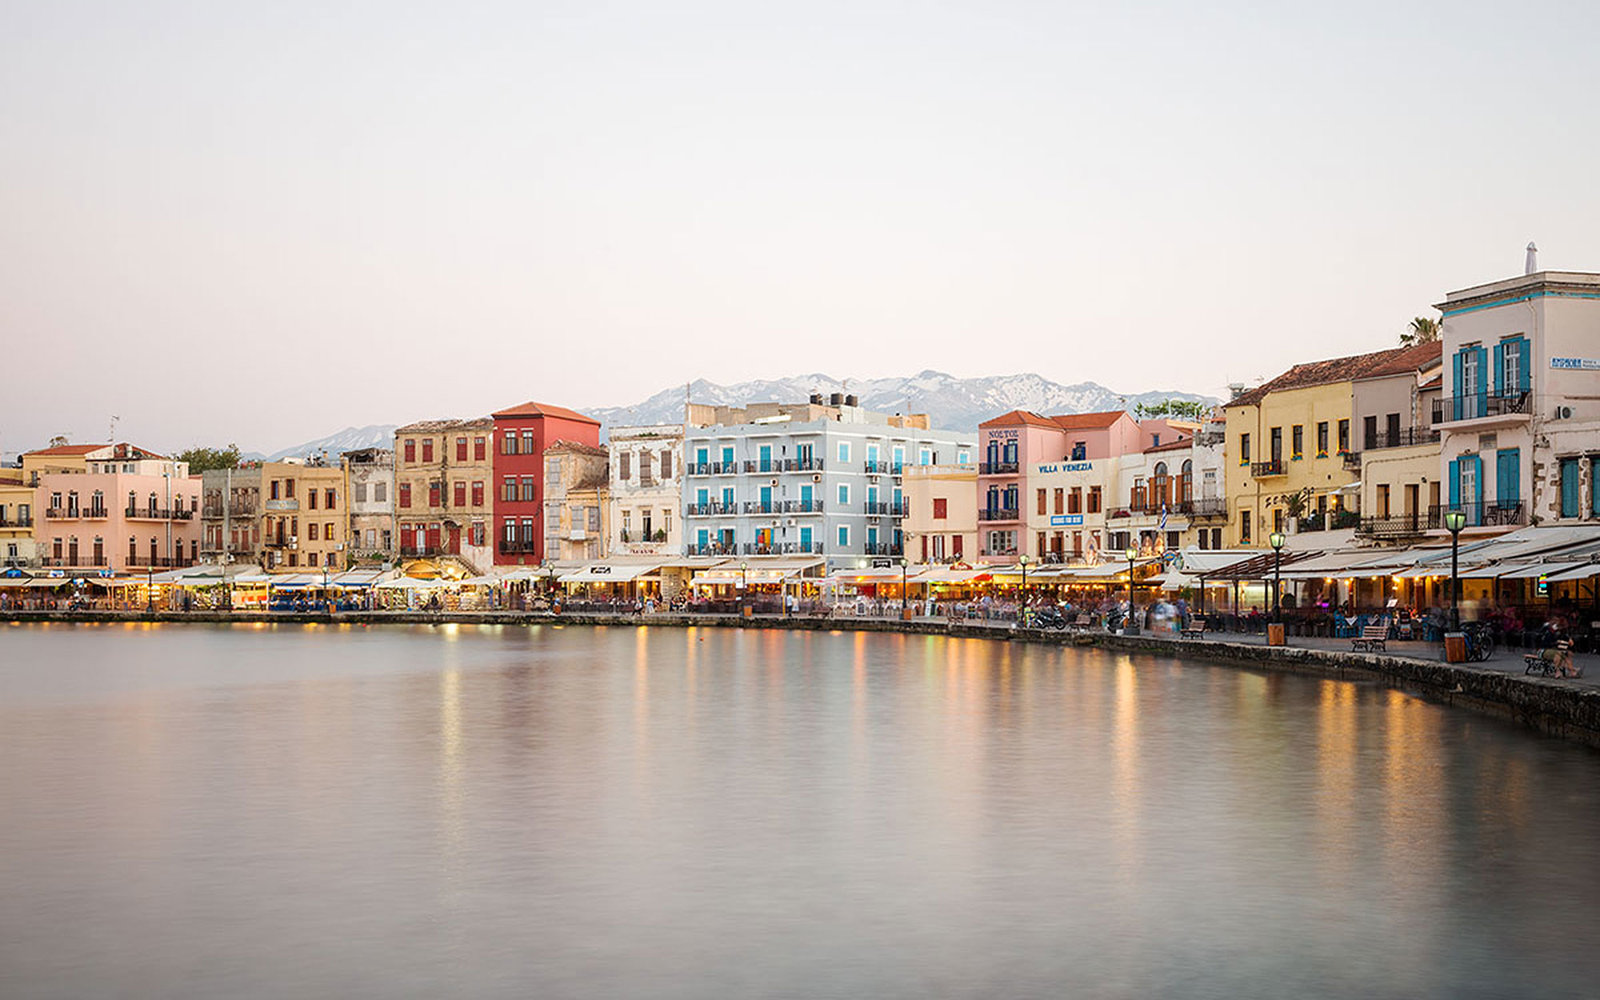 No. 10: Crete, Greece